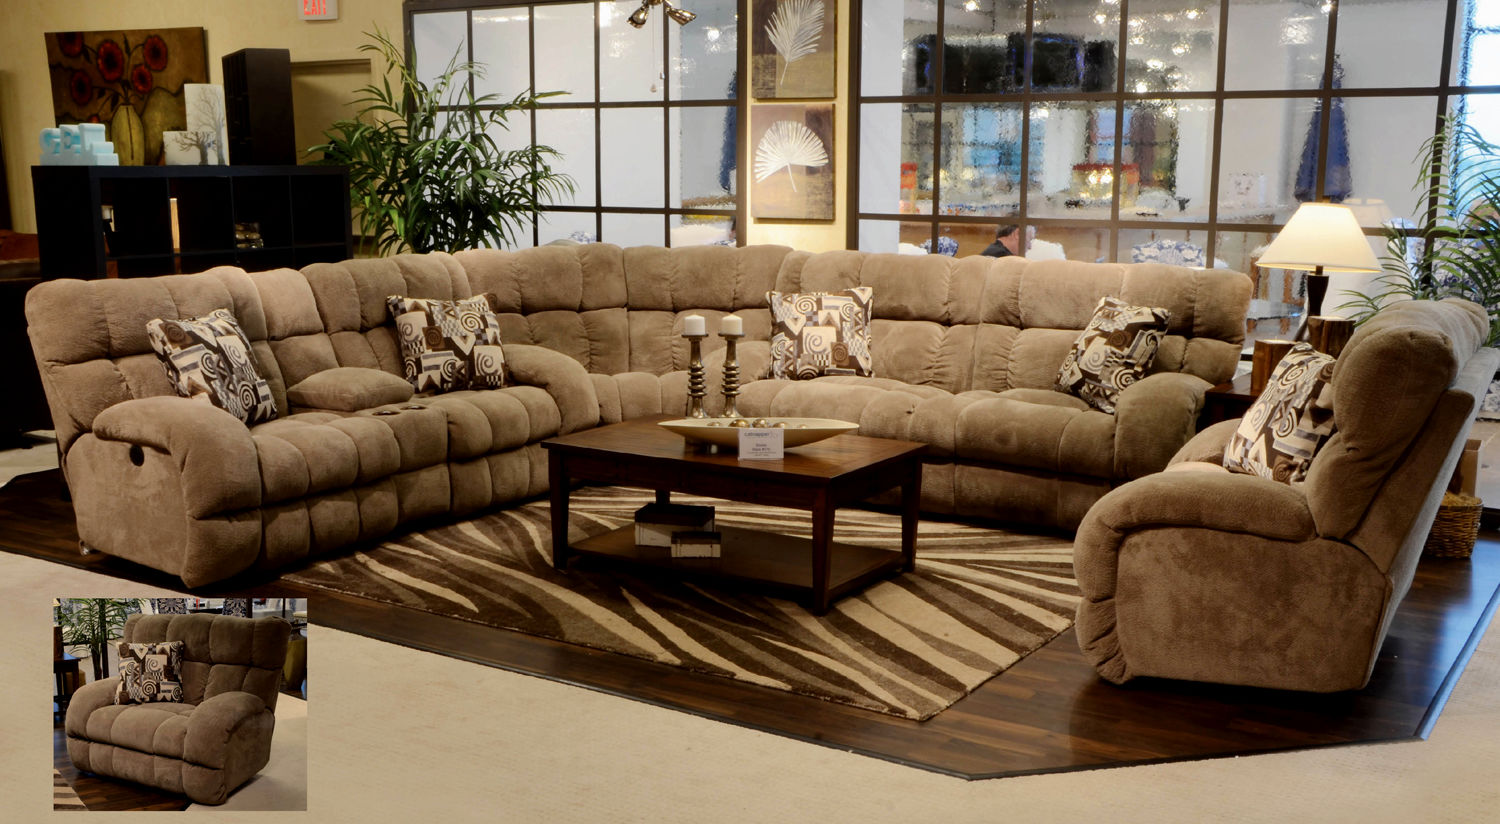 fancy sectional leather sofas picture-Unique Sectional Leather sofas Decoration